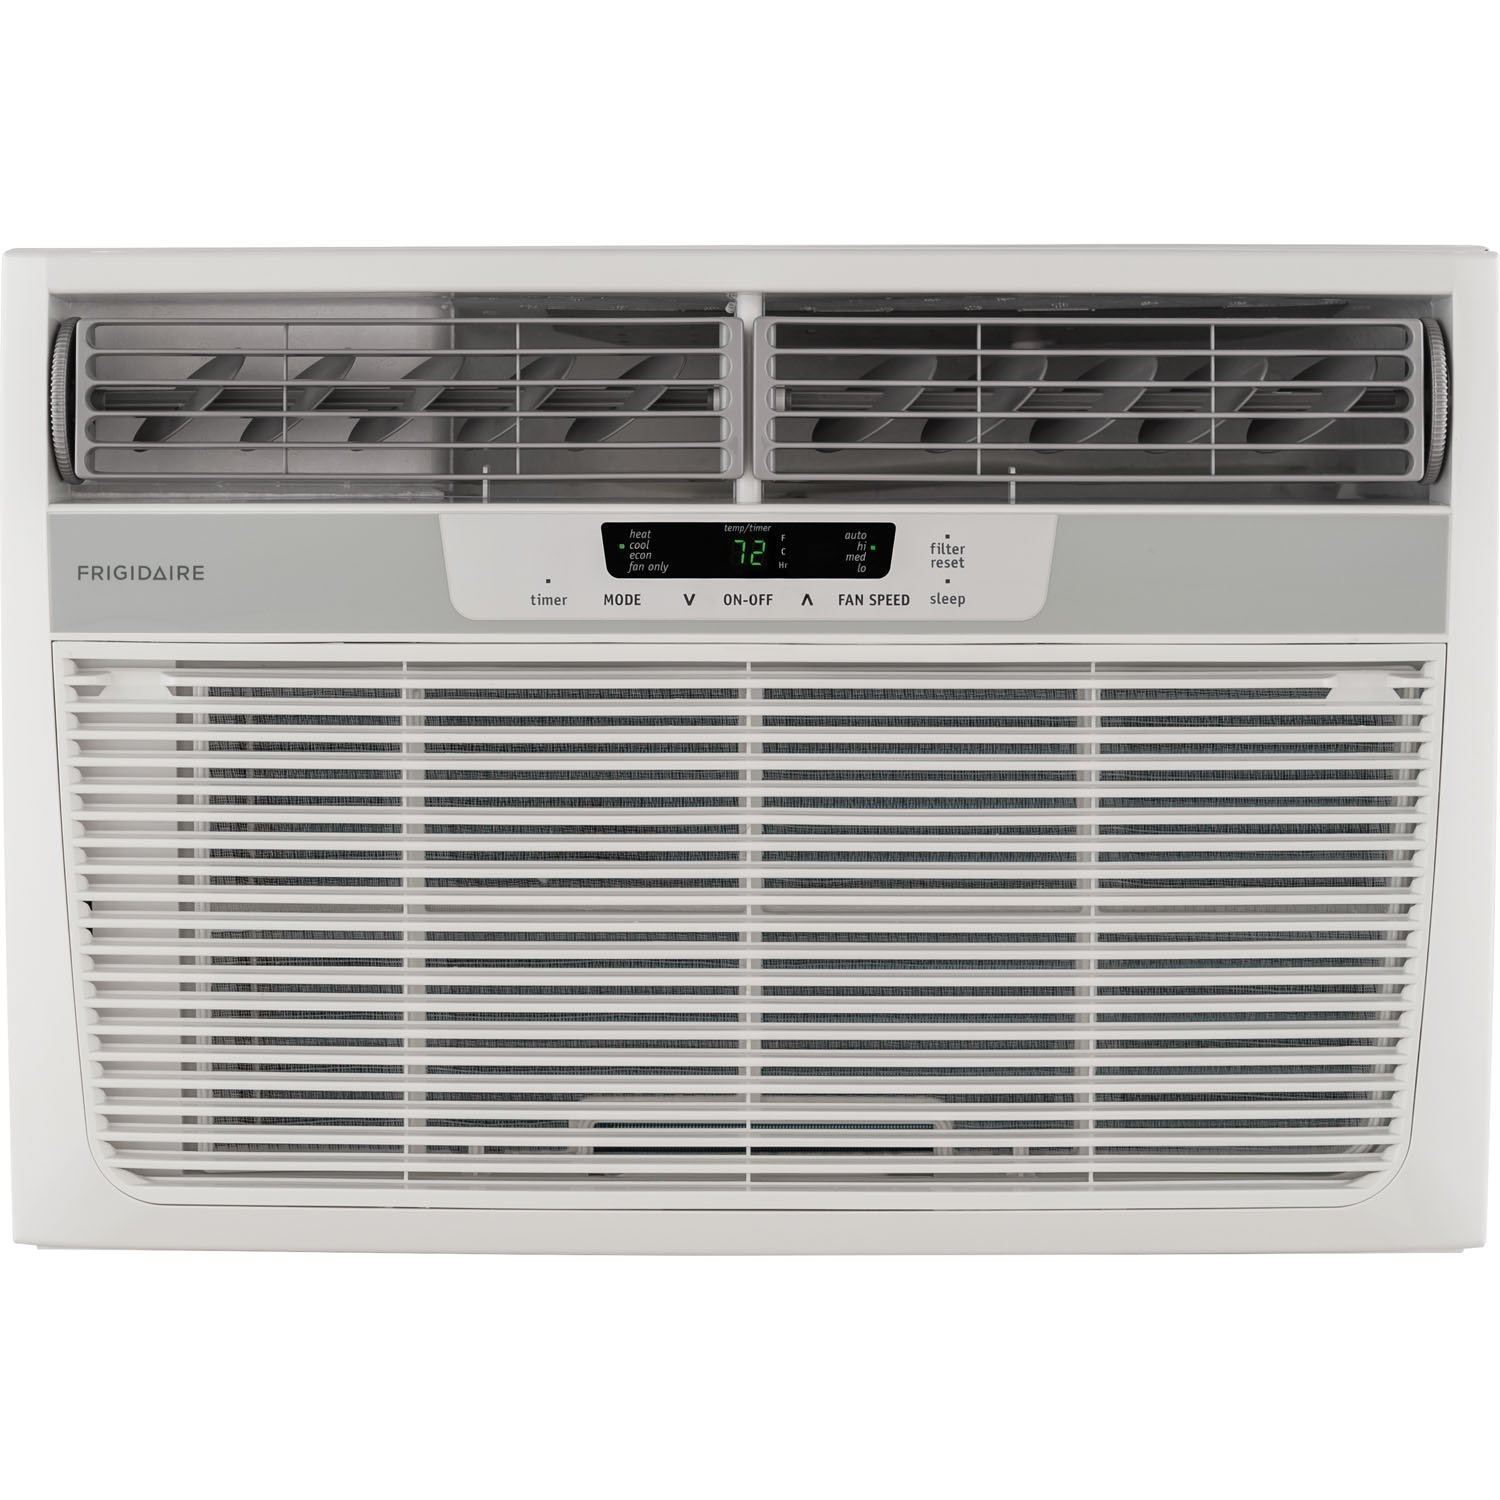 8000 BTU Heat/Cool Window Air Conditioner